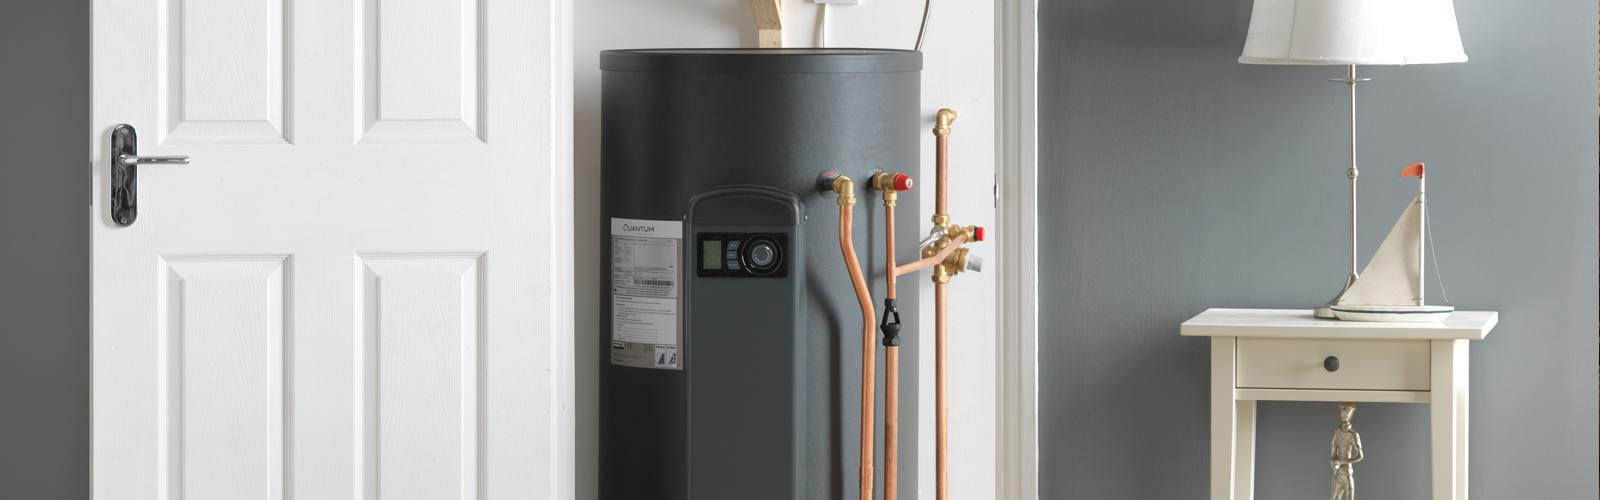 Water heater for kitchen in apartment